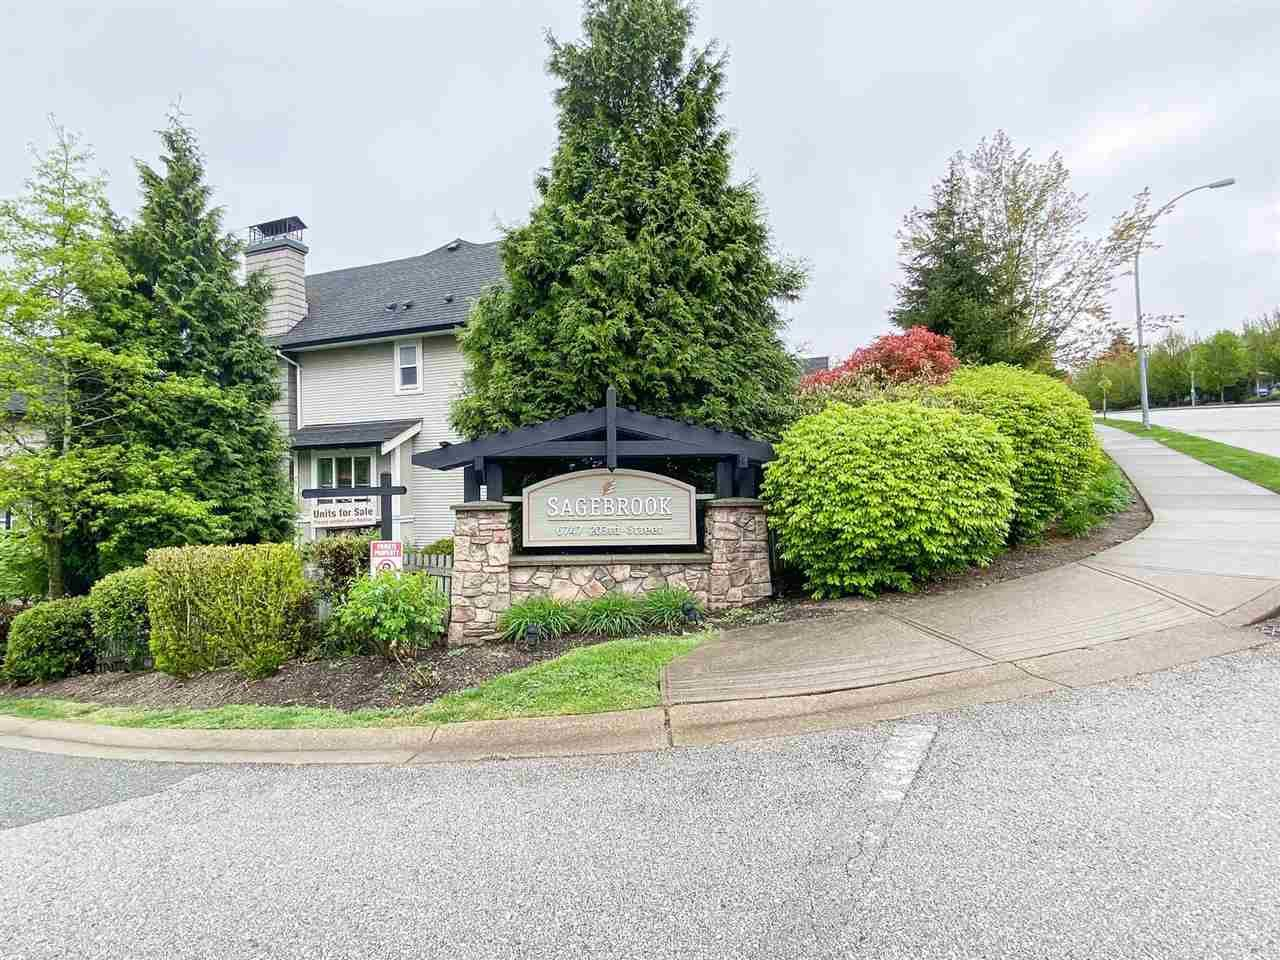 """Main Photo: 134 6747 203 Street in Langley: Willoughby Heights Townhouse for sale in """"SAGEBROOK"""" : MLS®# R2575428"""